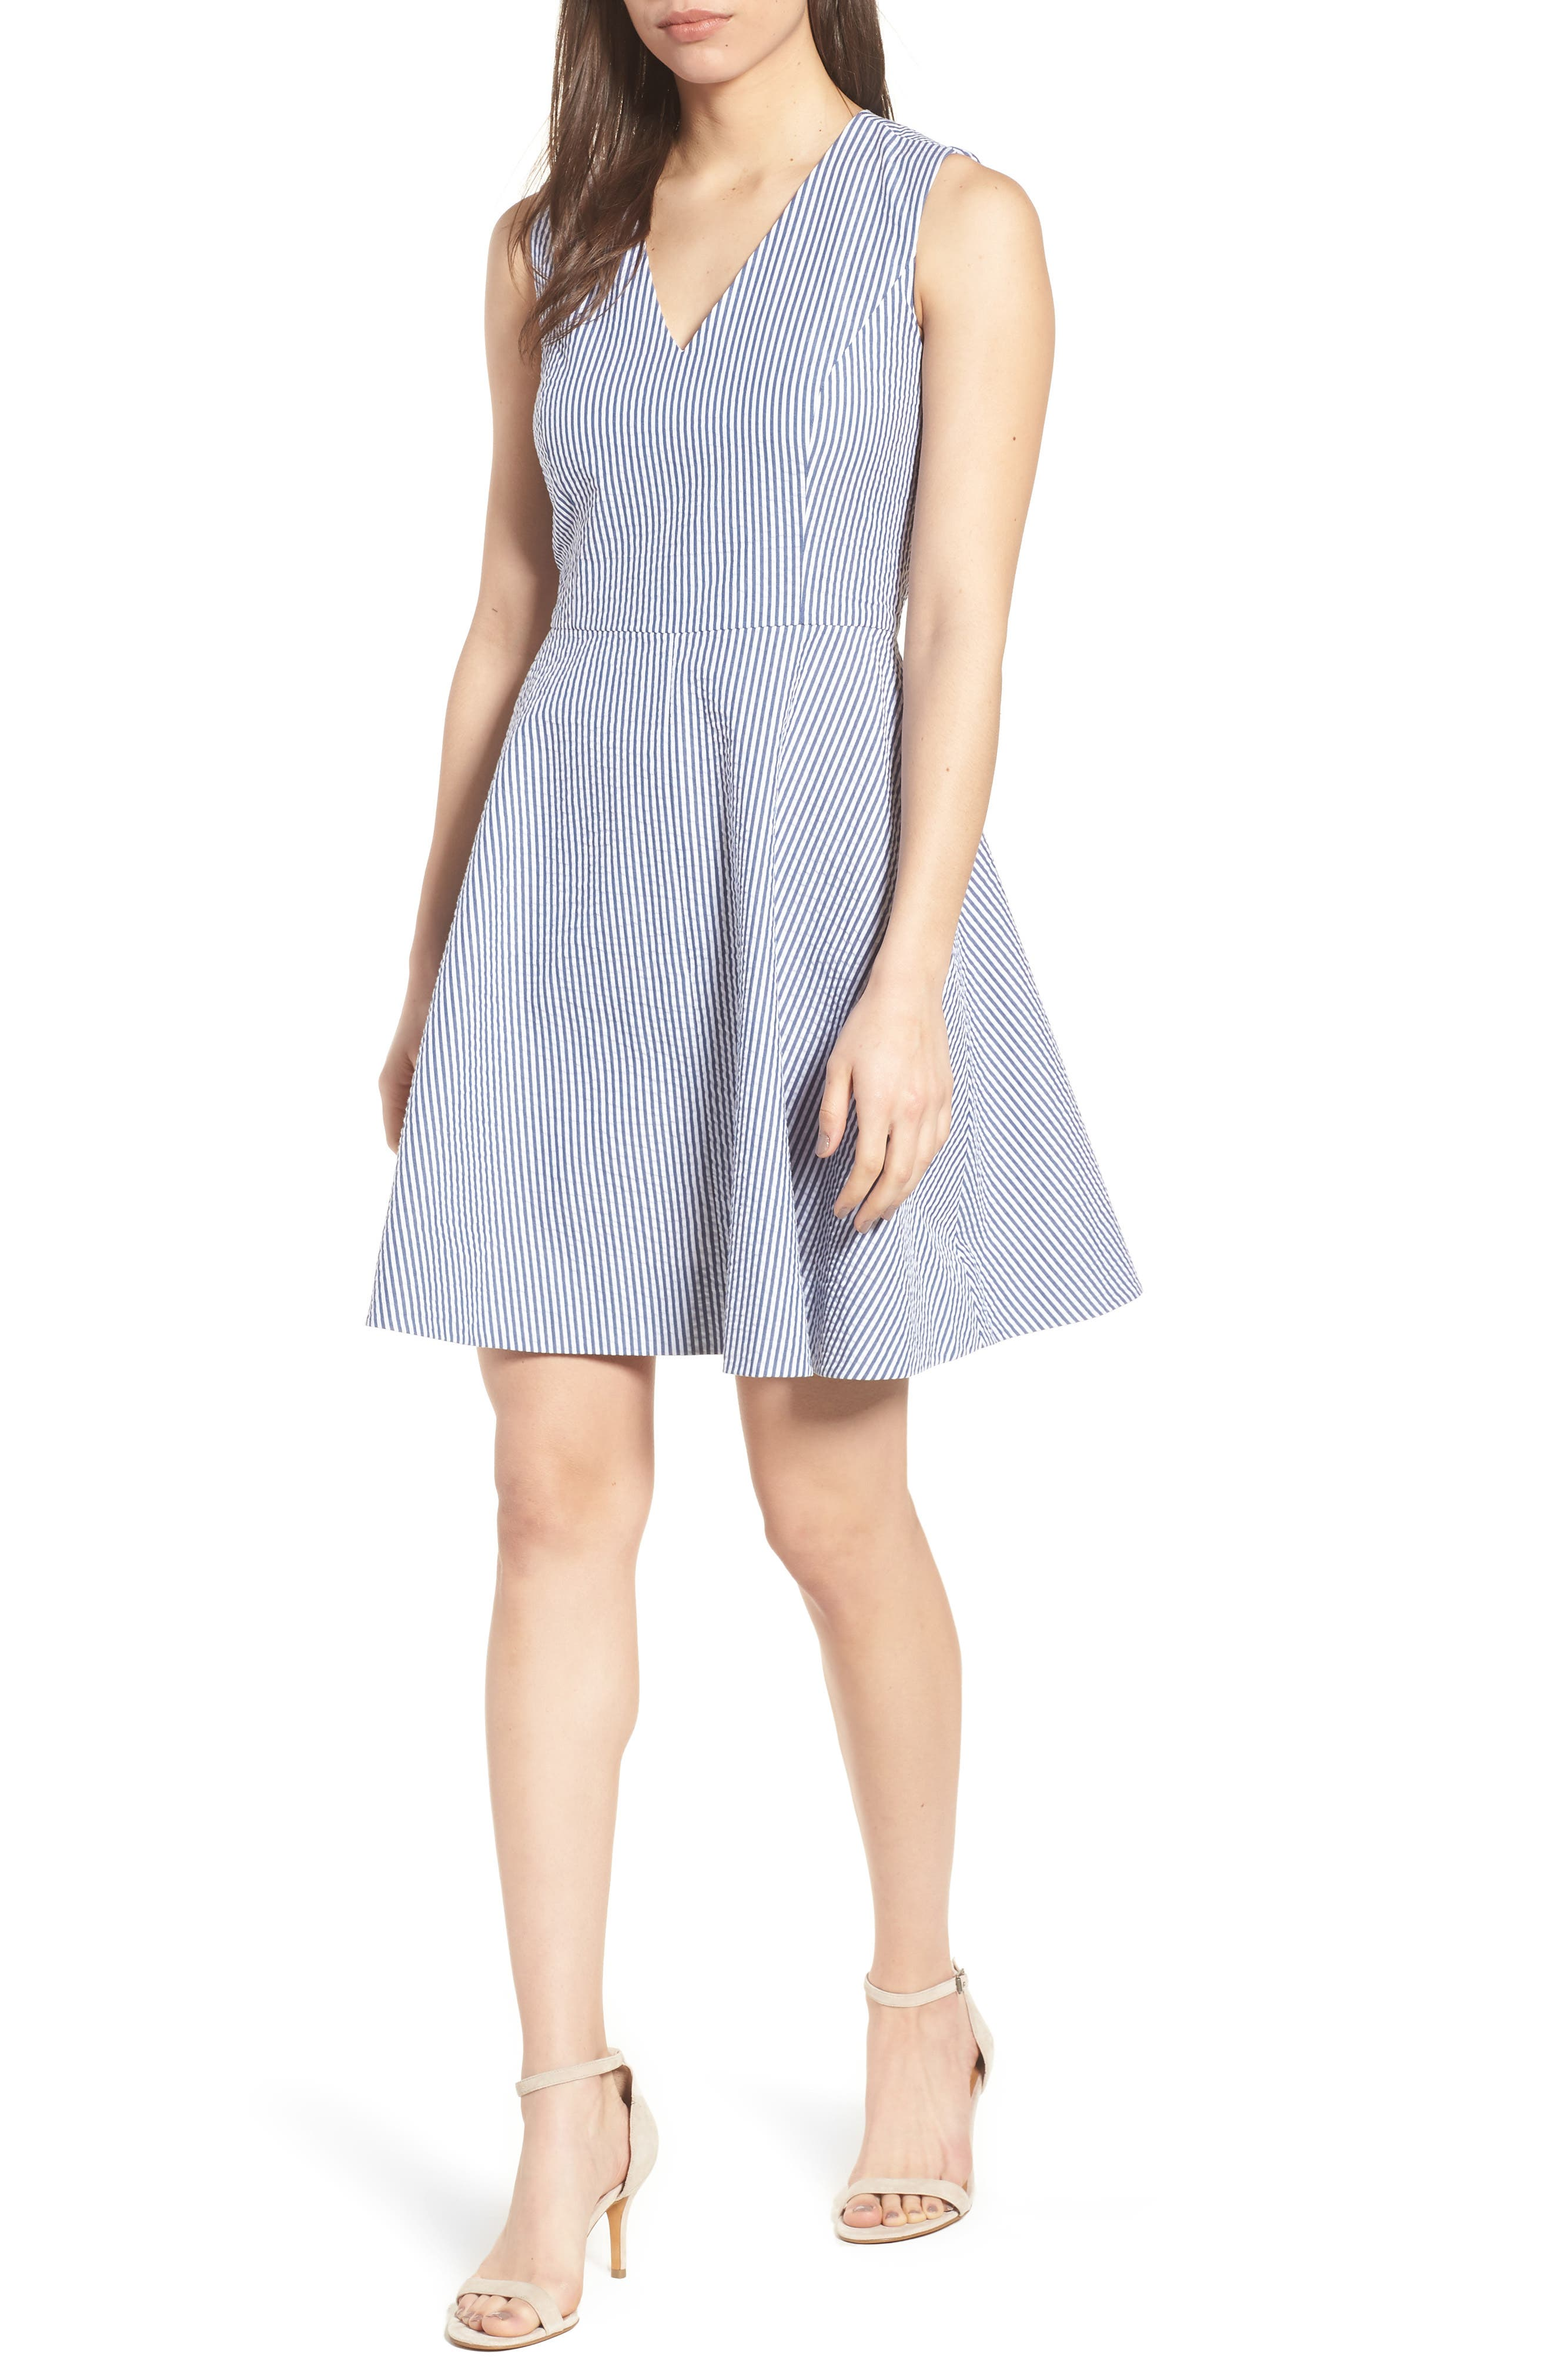 Draper James Love Circle Seersucker Stretch Cotton Dress